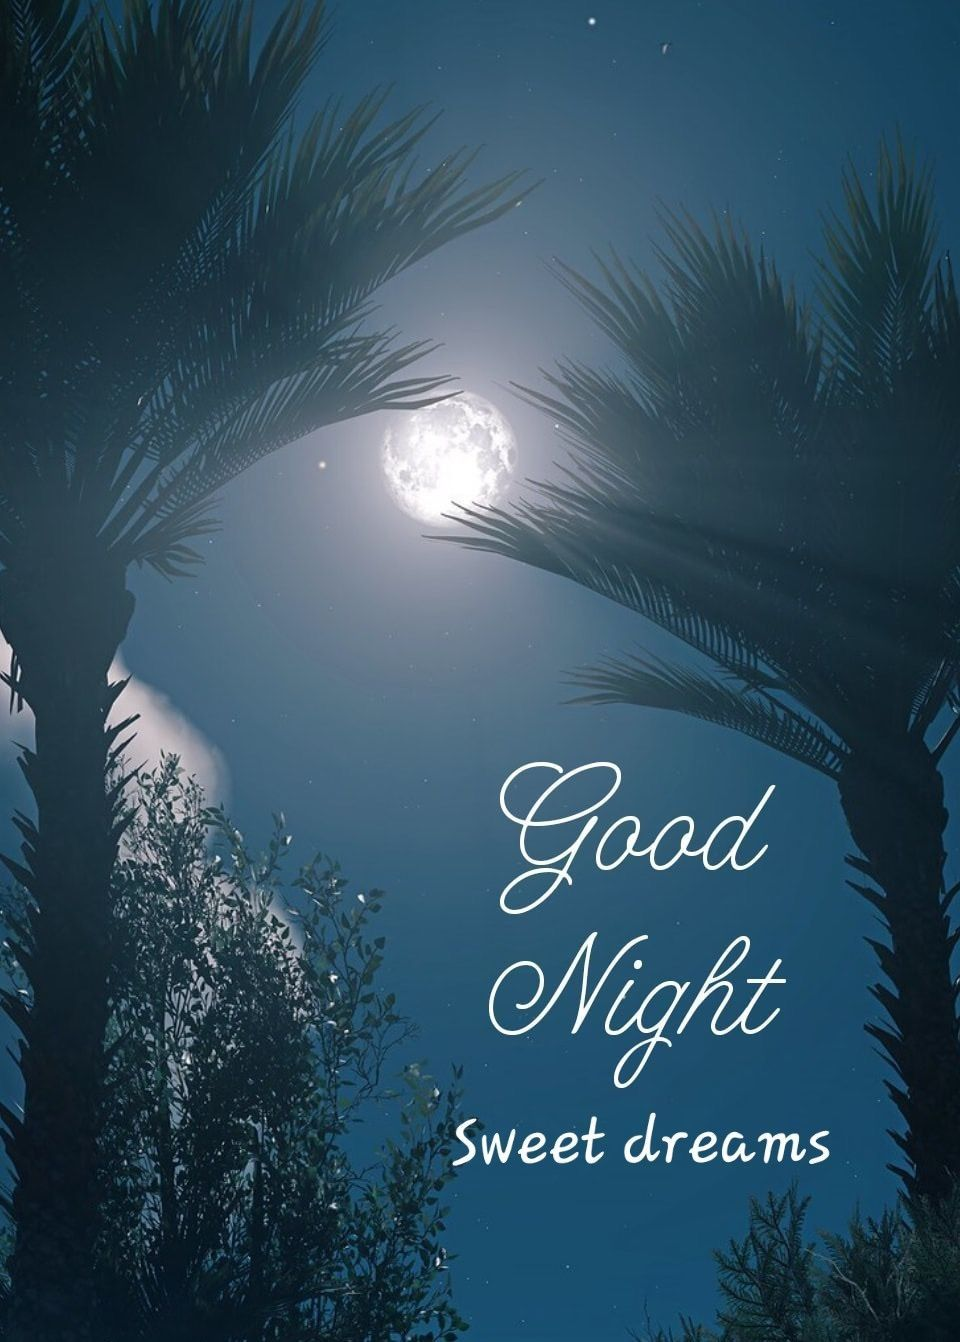 Good Night Quote Good Night My Love Best 40 Good Night Message To My Love Good Night My Love Goo Good Night Love Images Good Night Image Good Night Images Hd